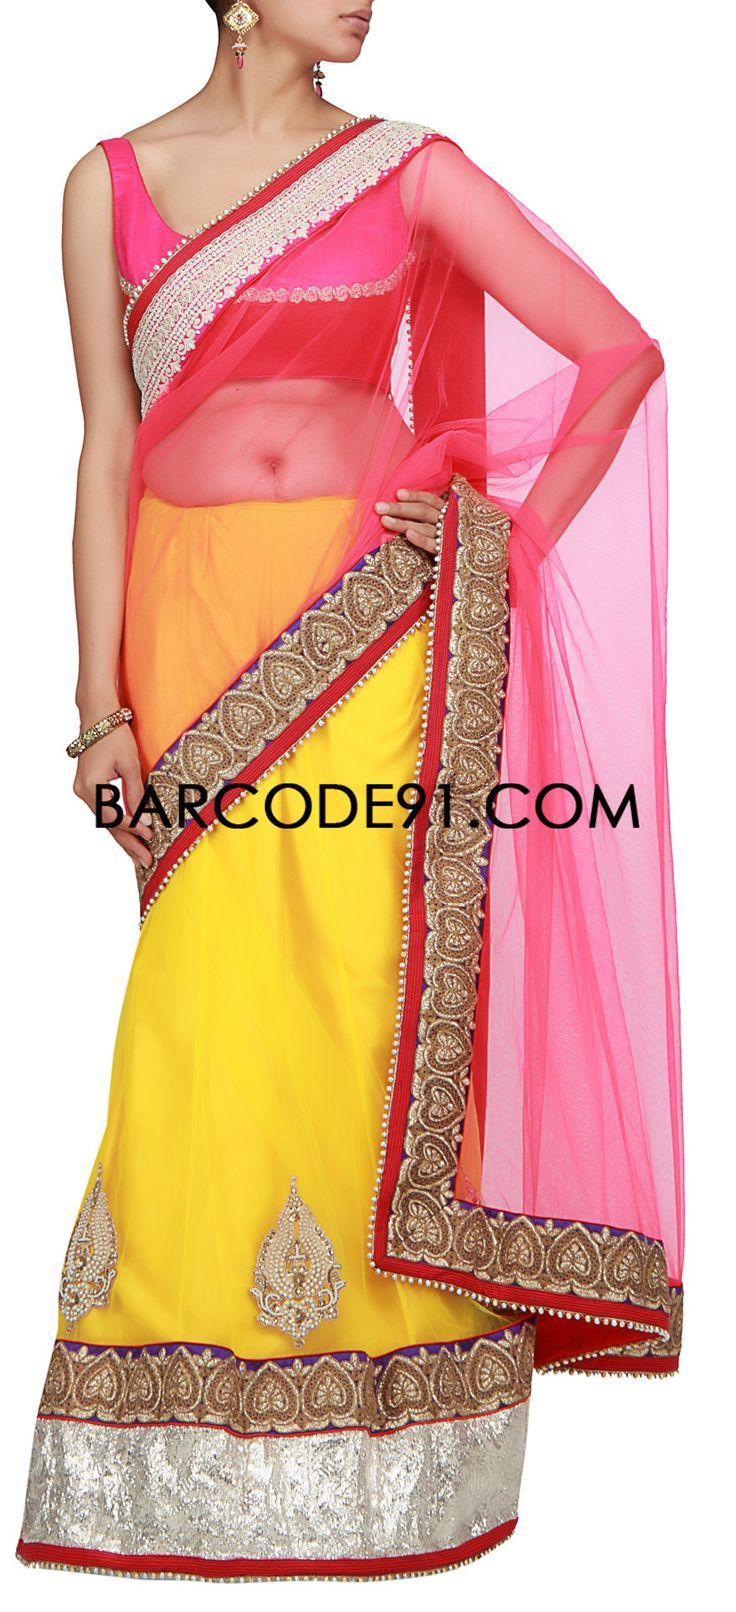 Buy it now  http://www.barcode91.com/a-pink-and-yellow-saree-with-embroidered-border-by-barcode-91-exclusive.html  A pink and yellow saree with embroidered border by Barcode 91 Exclusive